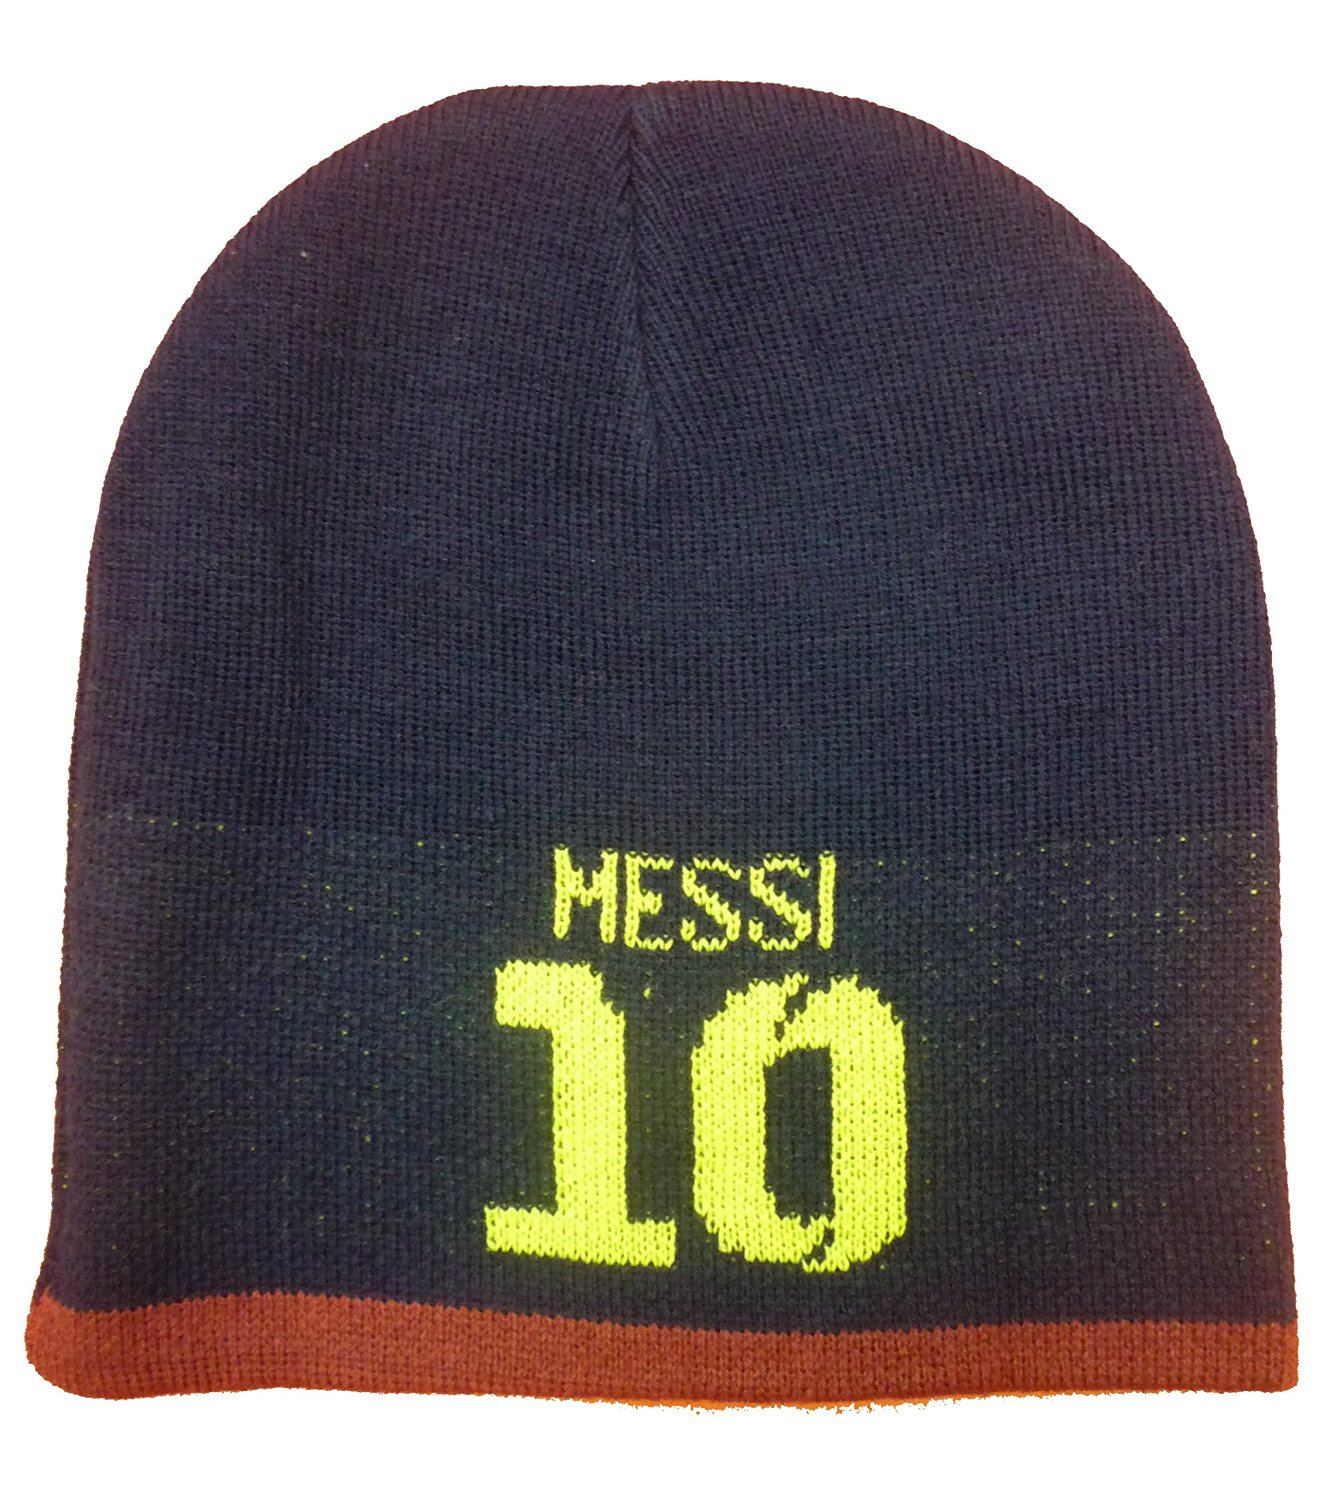 f13a123ec47 Get Quotations · Official Licensed FC Barcelona MESSI 10 Beanie Hat -  Licensed FC Barcelona Merchandise